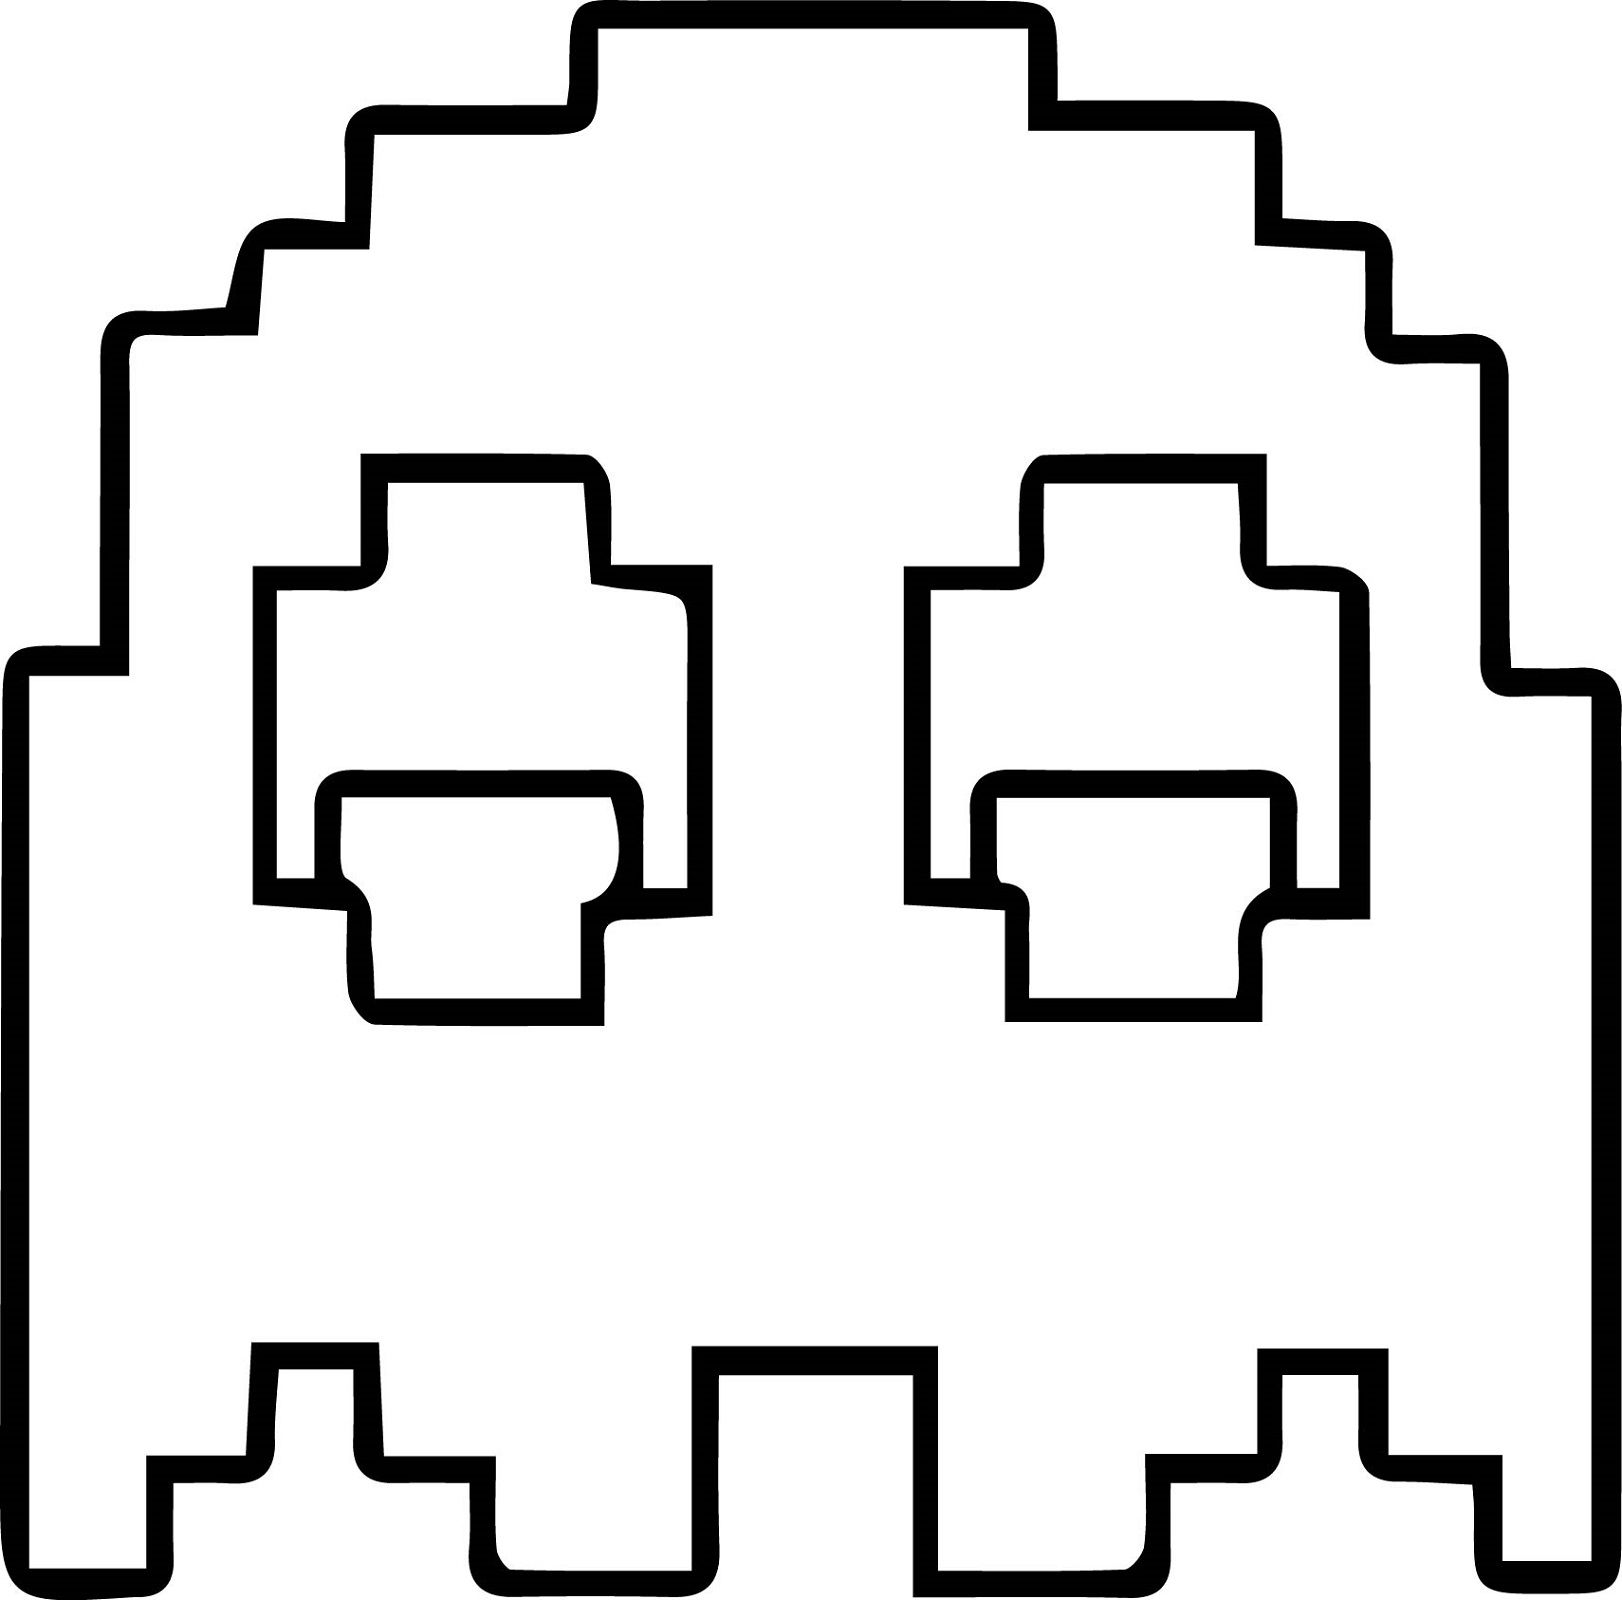 Pacman Coloring Pages Ghostly Pixelated Educative Printable Coloring Pages Coloring Pages To Print Printable Coloring Pages